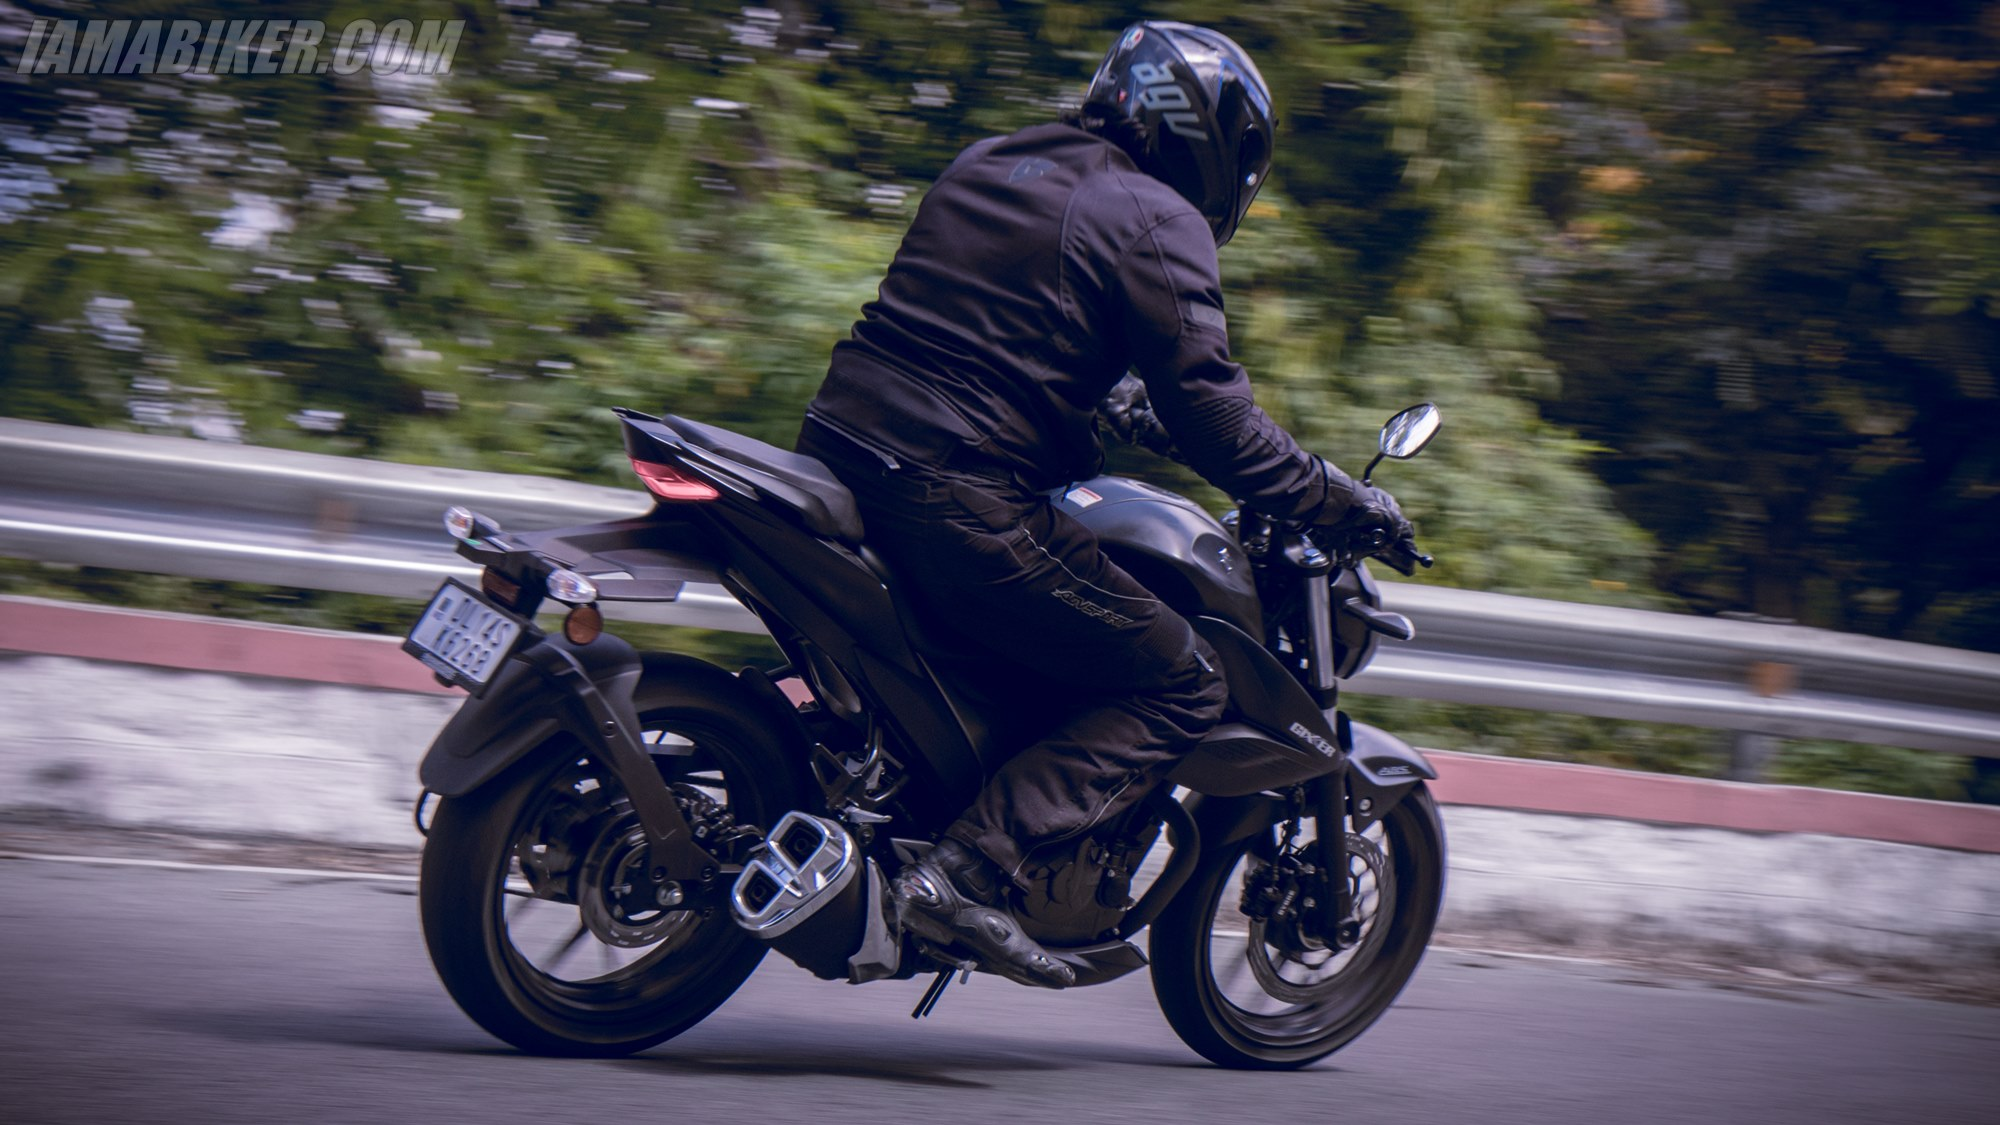 Suzuki Gixxer 250 handling and braking